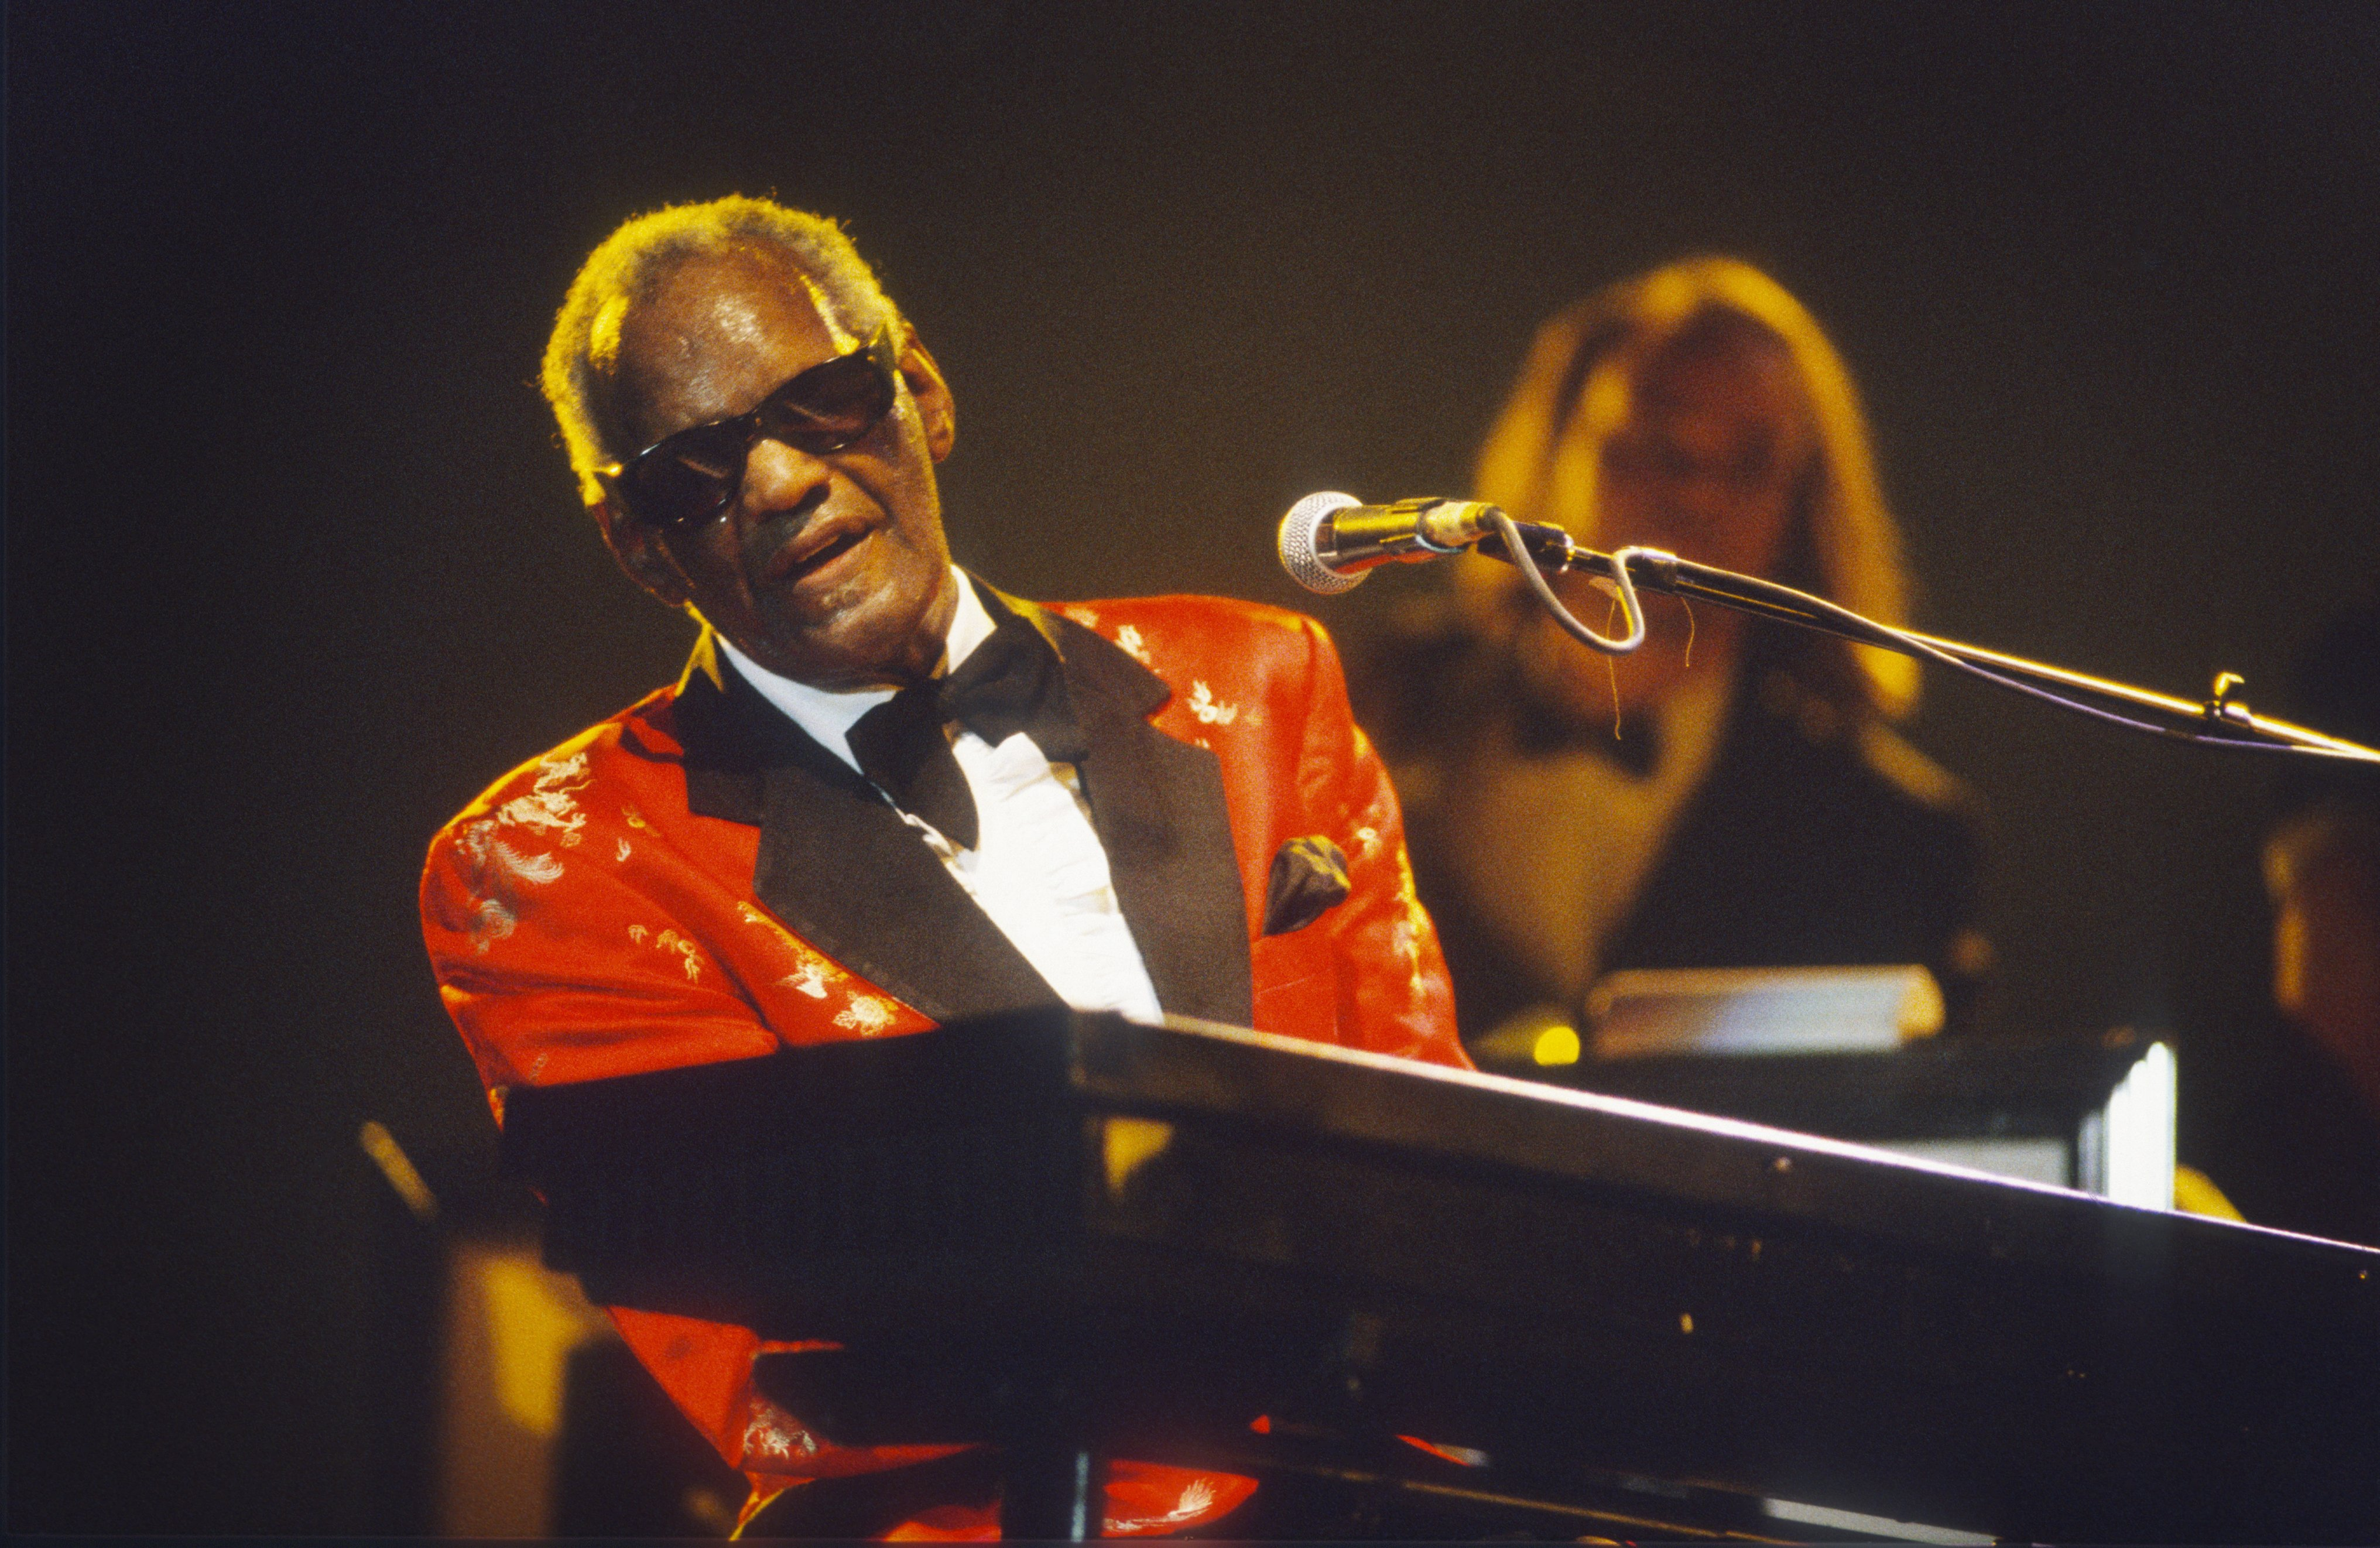 Ray Charles at the Rhythm 'n' Blues Festival, Peer, Belgium, 1994. | Photo: GettyImages